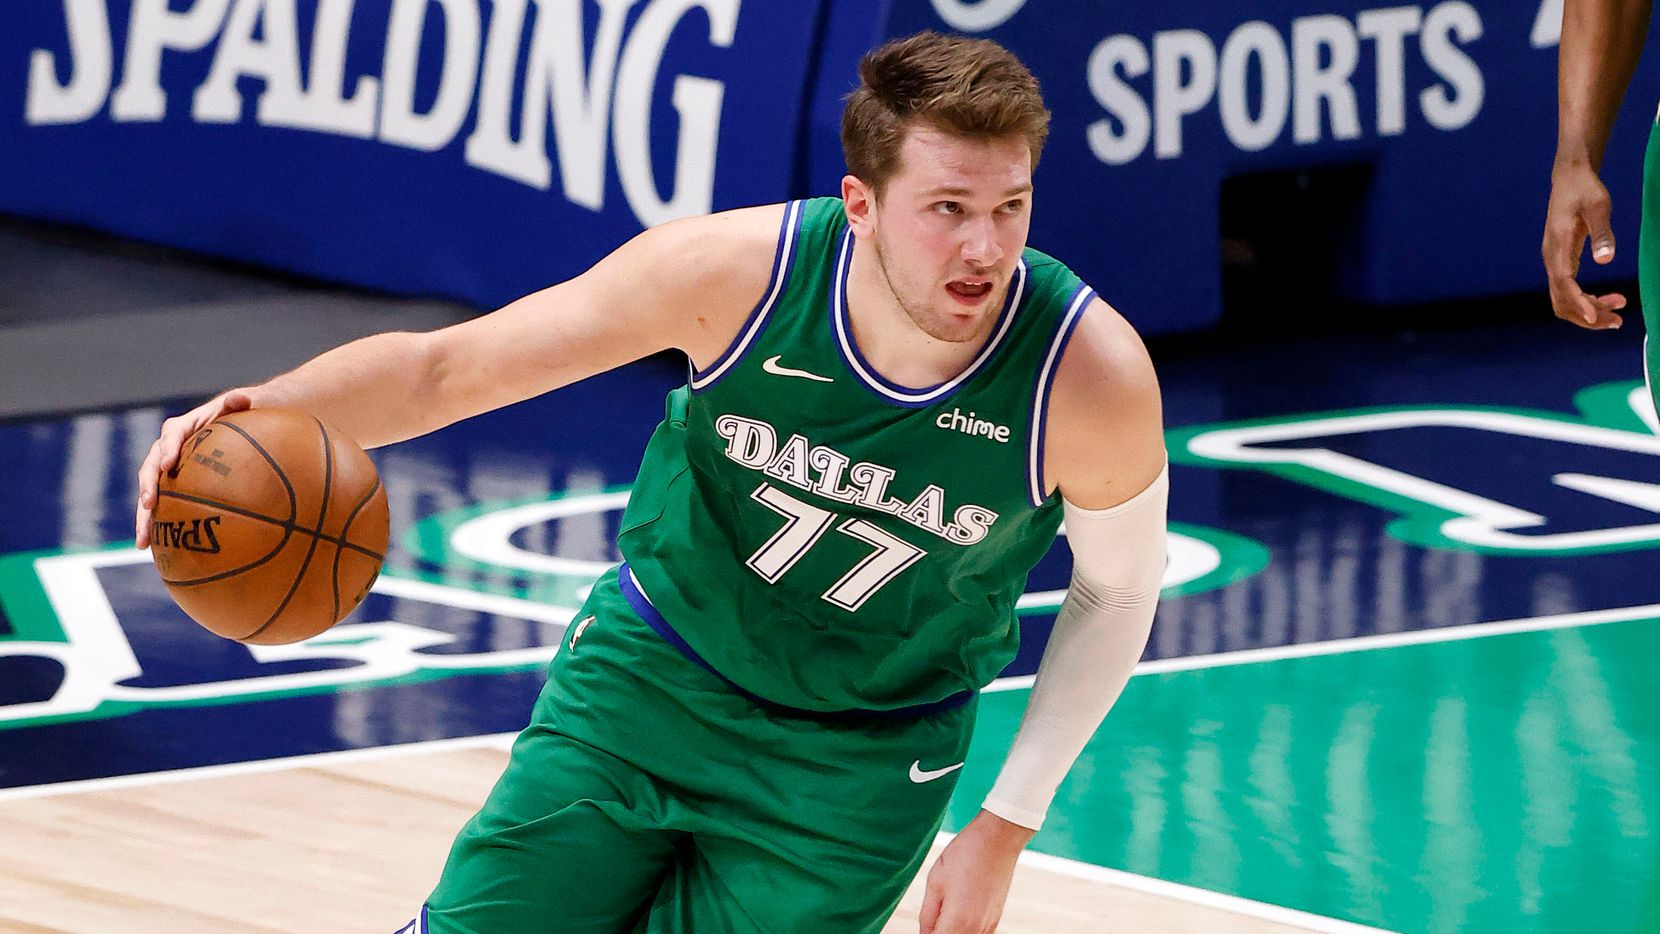 Dallas Mavericks guard Luka Doncic (77) grabs a rebound against the Milwaukee Bucks in the second quarter at the American Airlines Center in Dallas, Thursday, April 8, 2021.